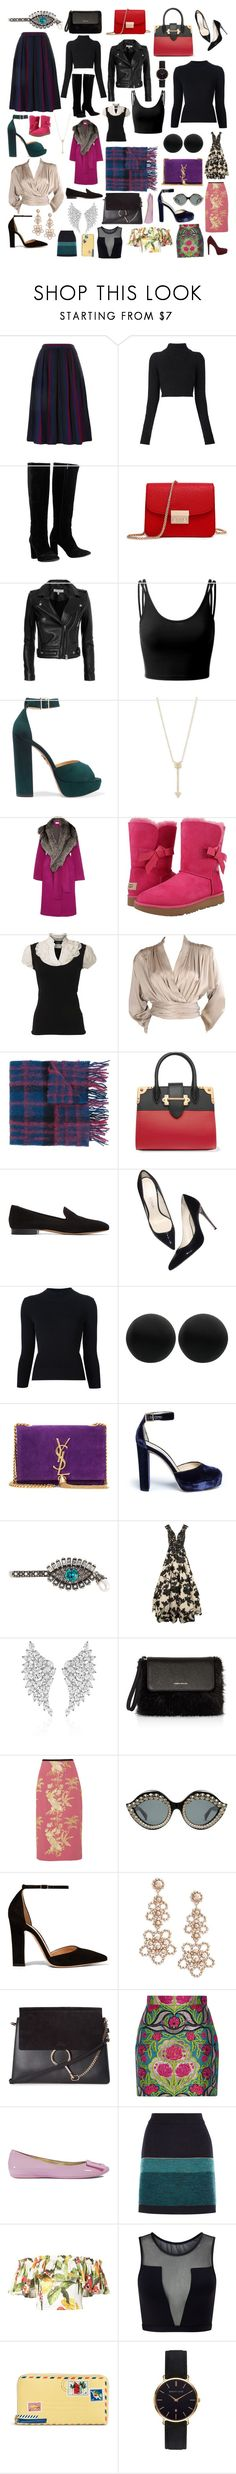 """""""Some of my favorite things #60"""" by andyarana ❤ liked on Polyvore featuring Yves Saint Laurent, Balmain, Chloé, IRO, Doublju, Charlotte Olympia, EF Collection, Tanya Taylor, UGG and Dorothy Perkins"""